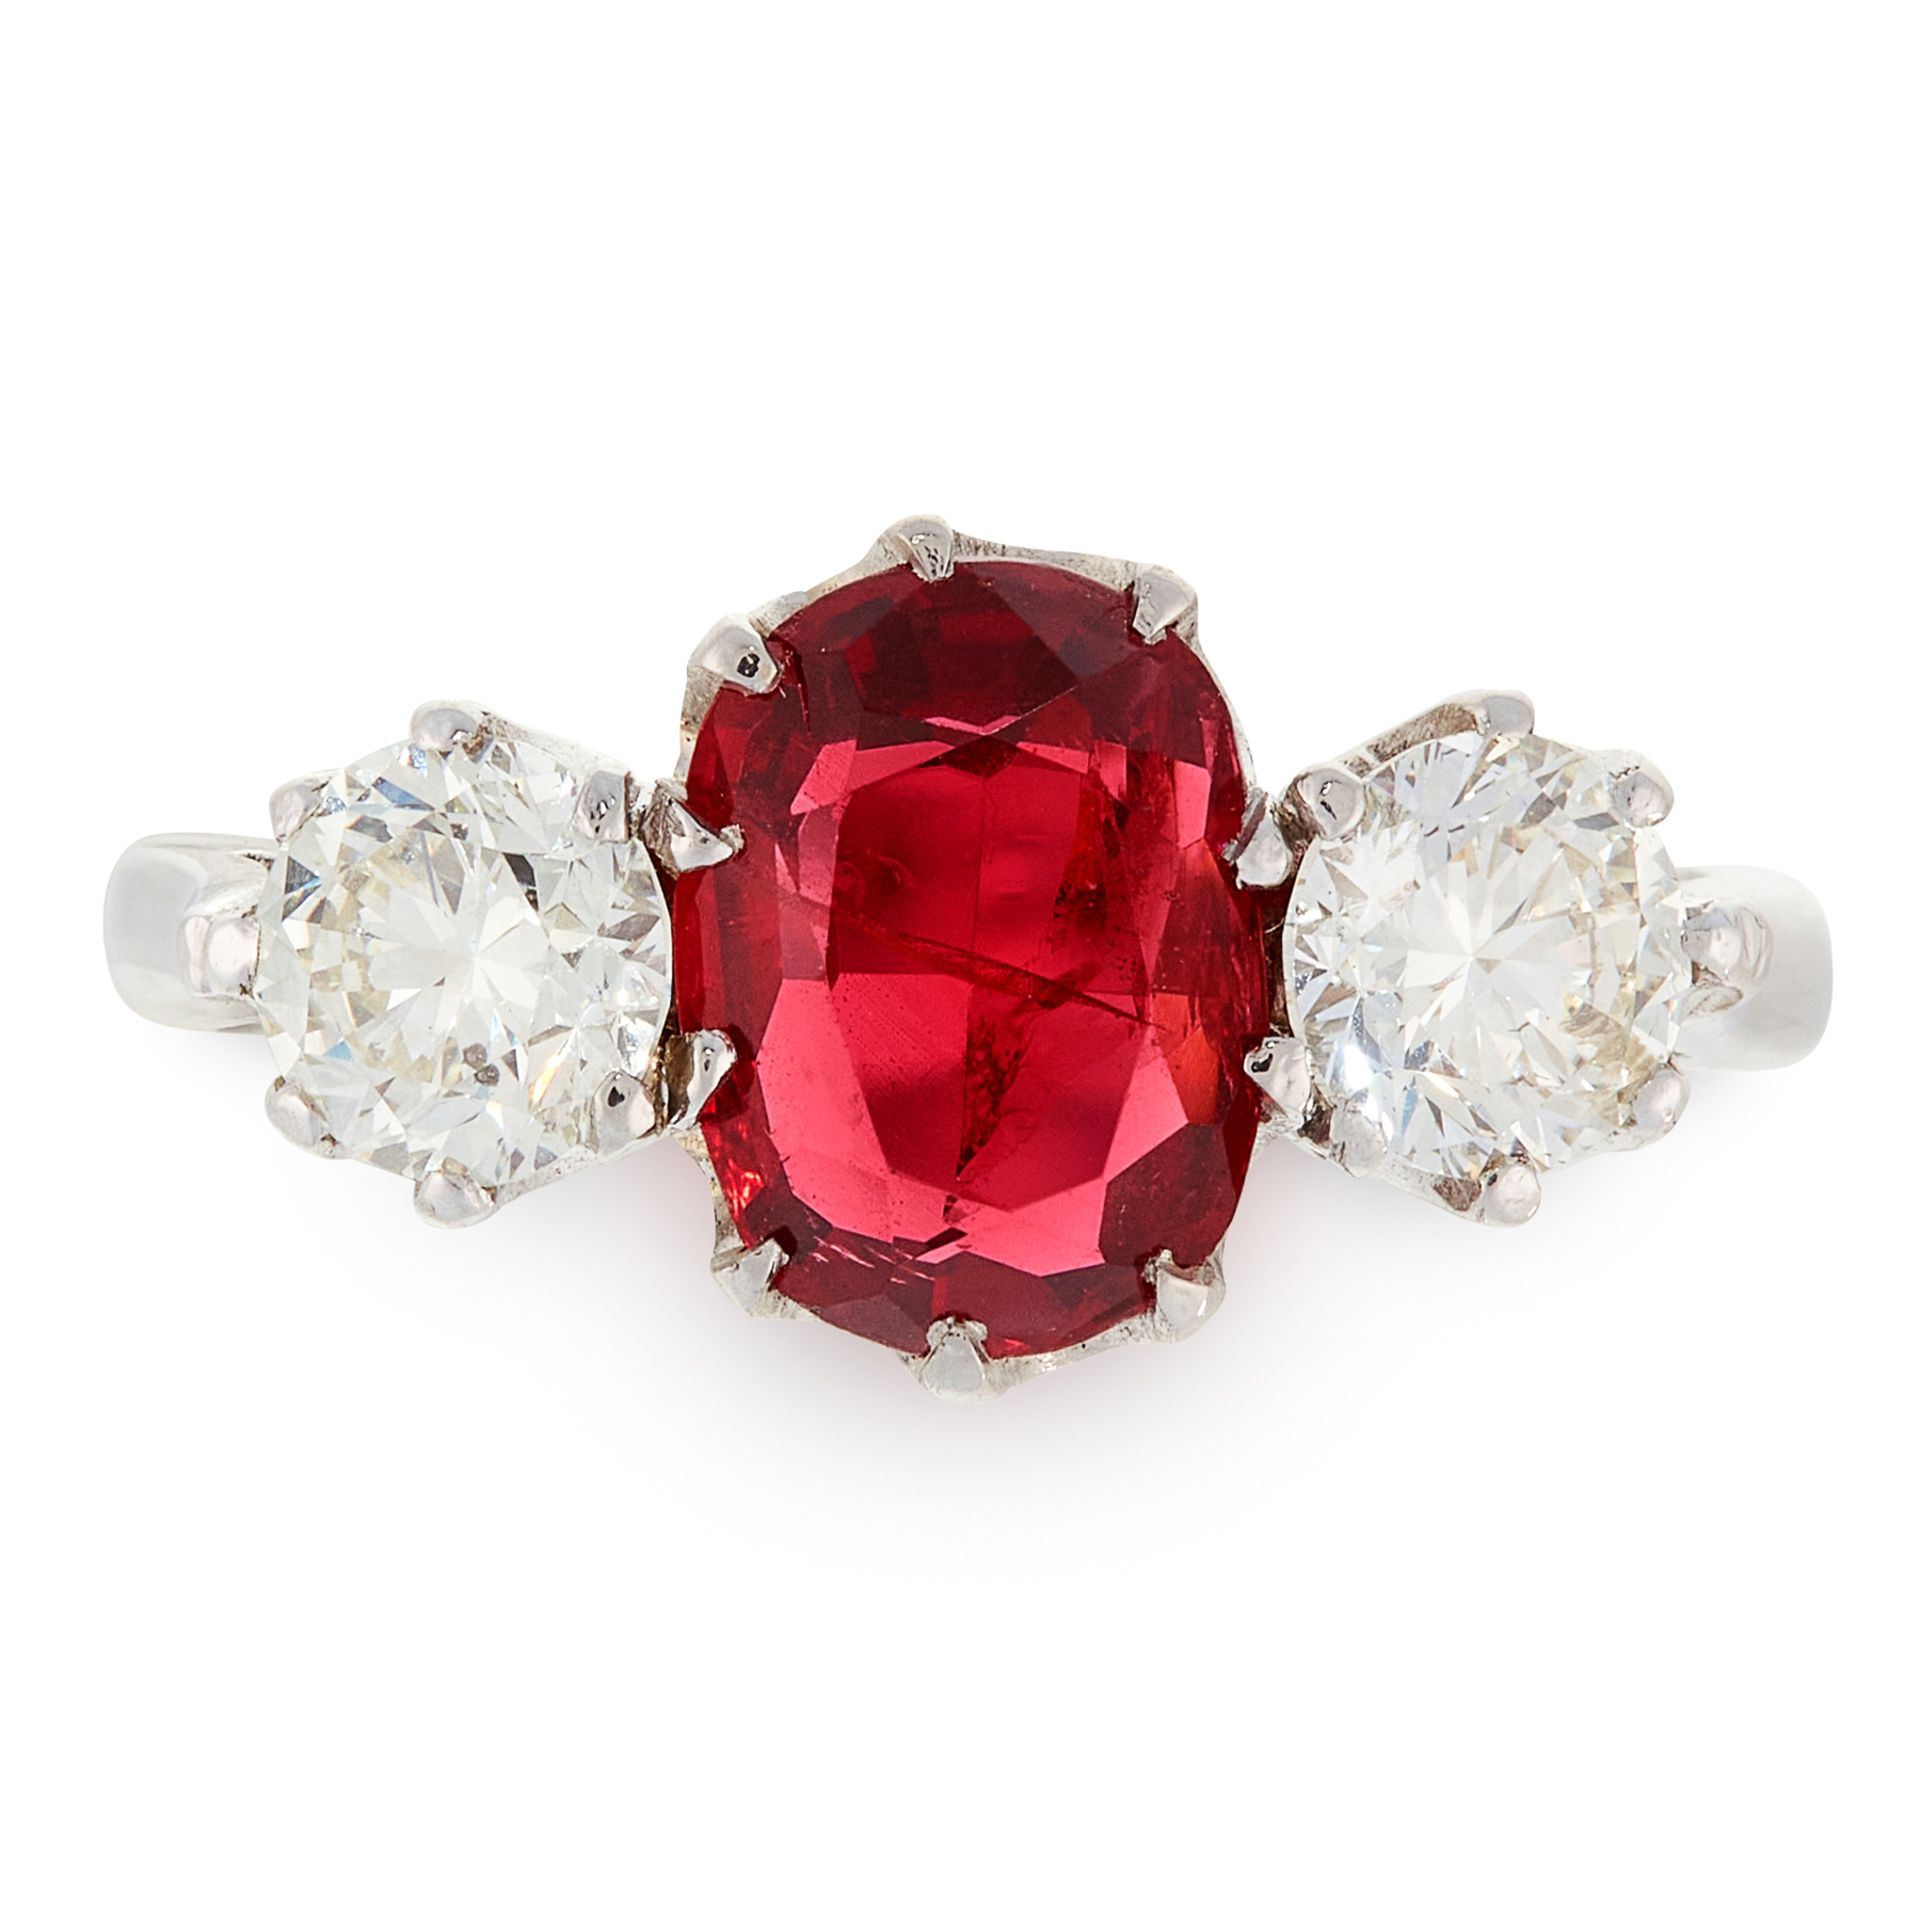 A SPINEL AND DIAMOND THREE STONE RING in platinum, set with an oval cushion cut spinel of 1.84